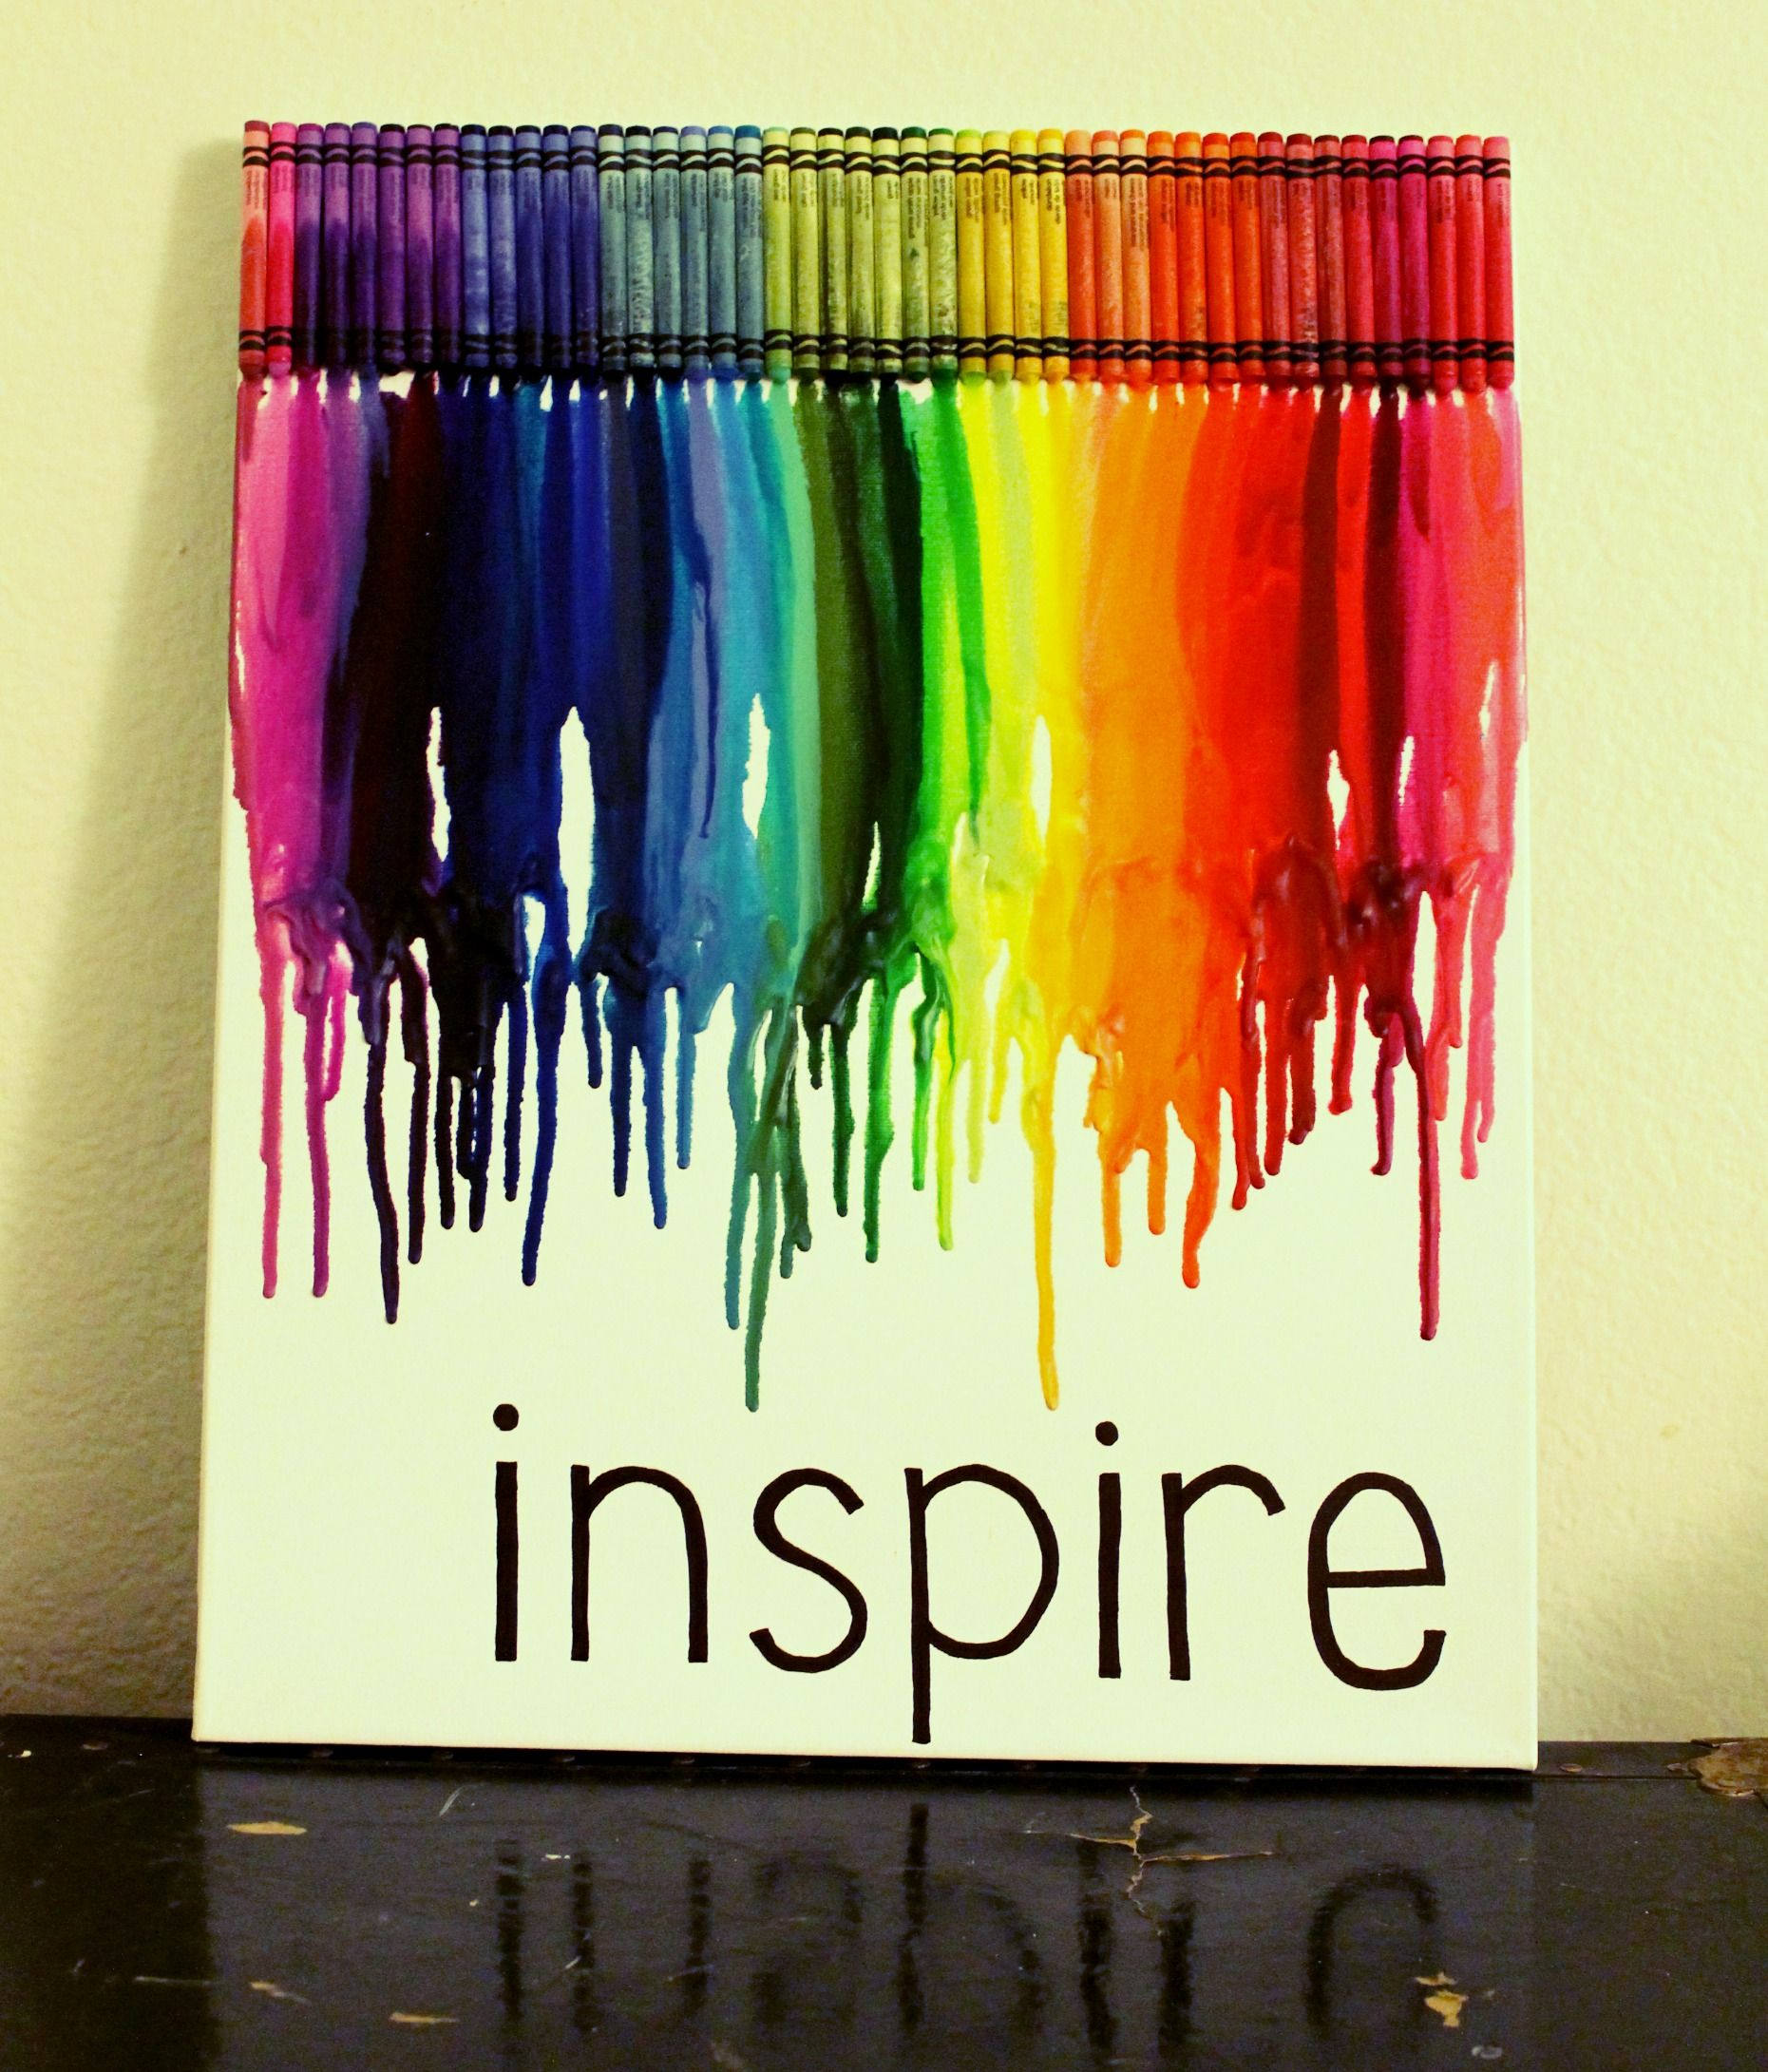 Crayon Art For Wall Take Off Crayon Wrapper Or Keep It On